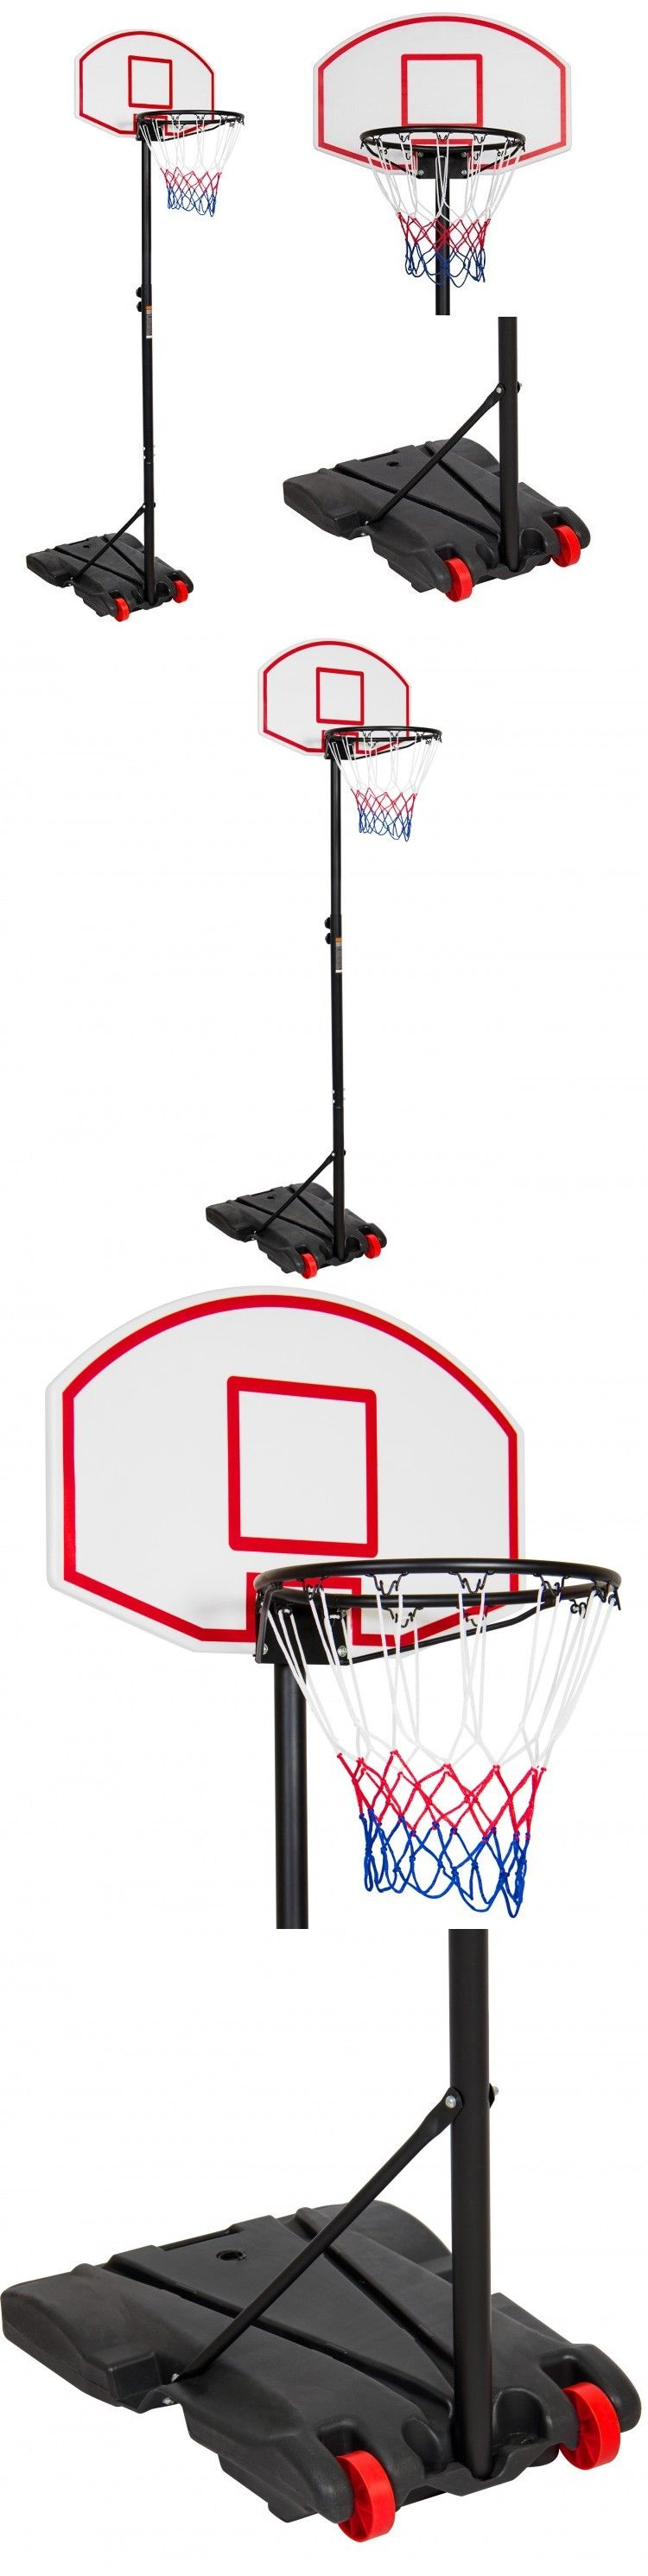 backboard systems 21196 free standing basketball hoop wheeled stand